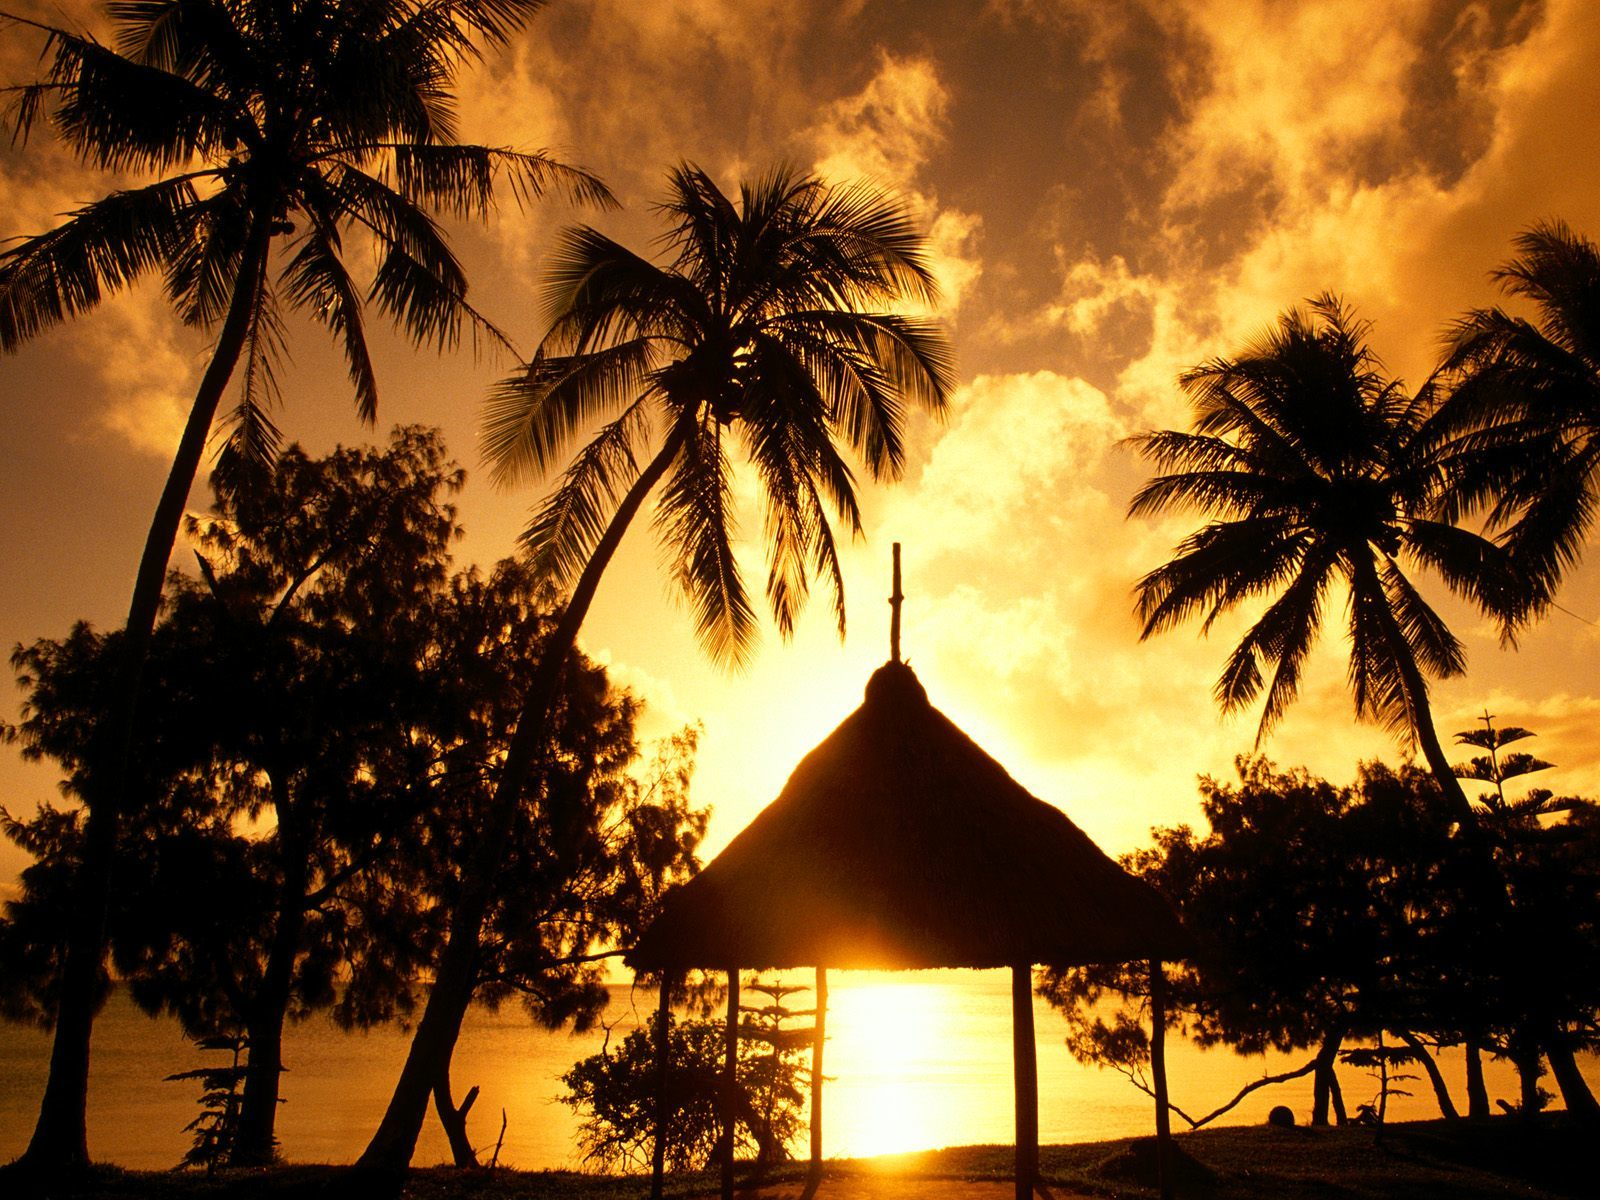 sun. dawn bay of HD Wallpaper